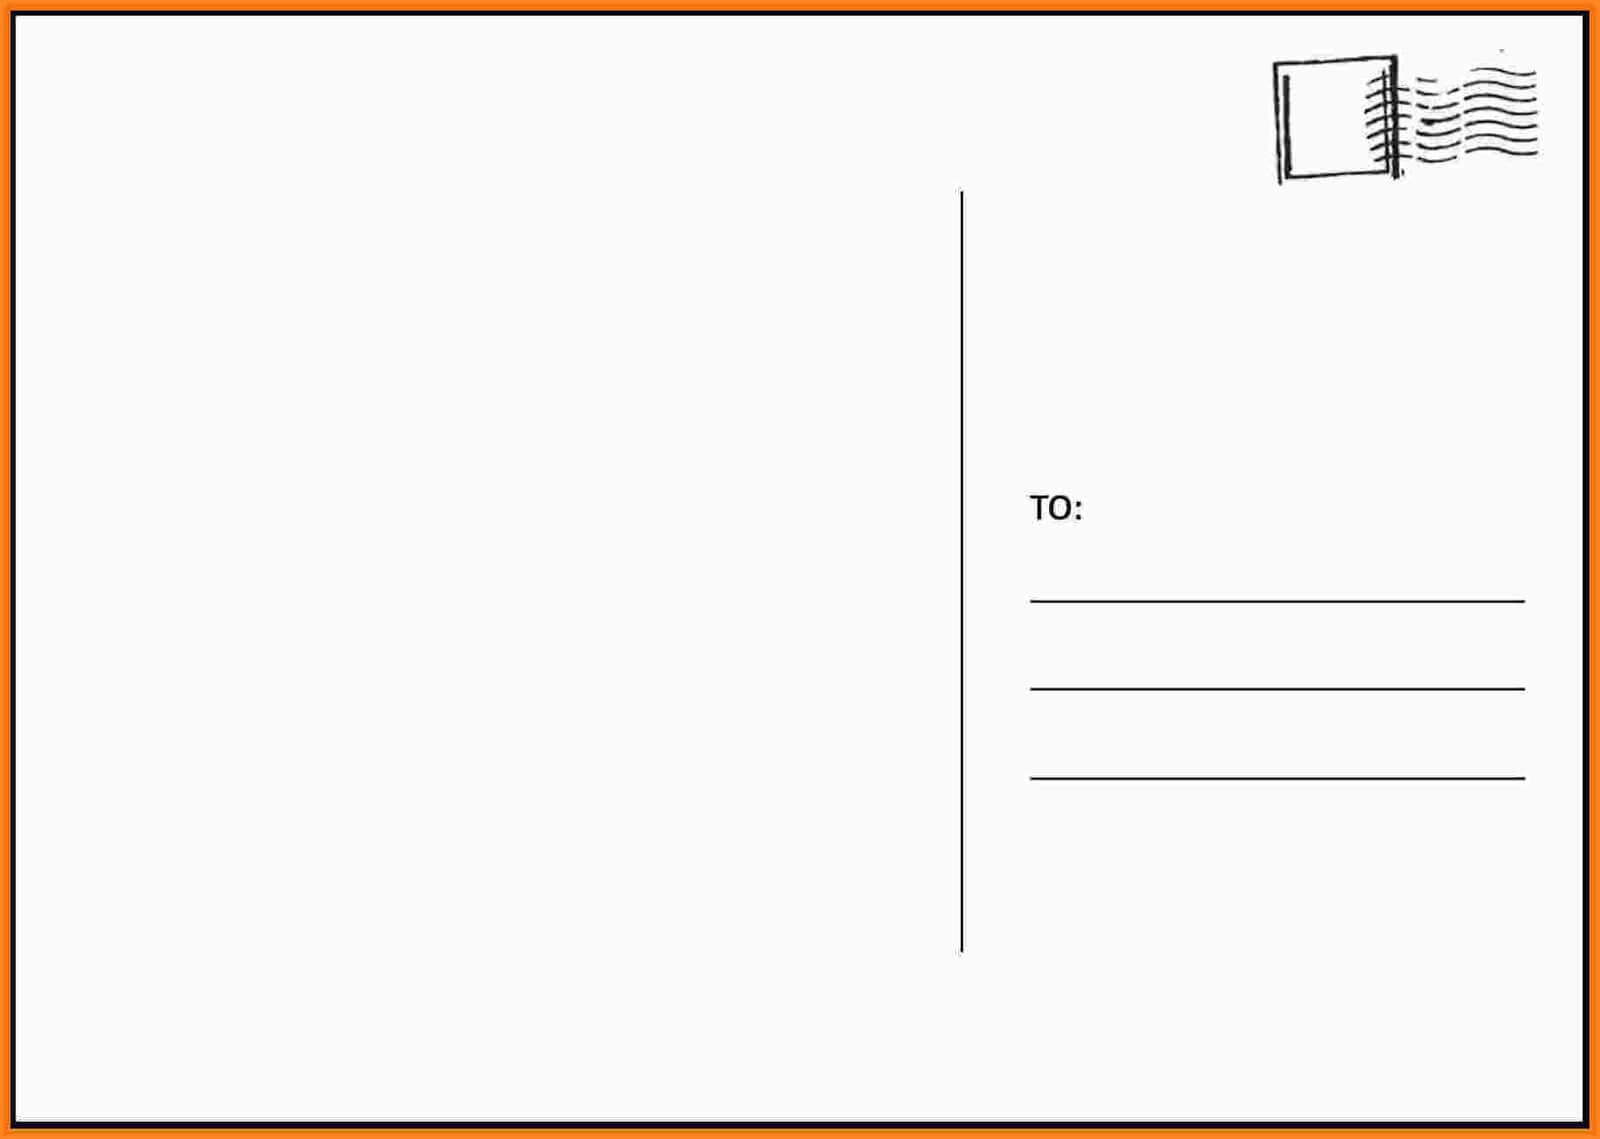 025 Blank Postcard Template Free Printable Religious In Microsoft Word 4X6 Postcard Template